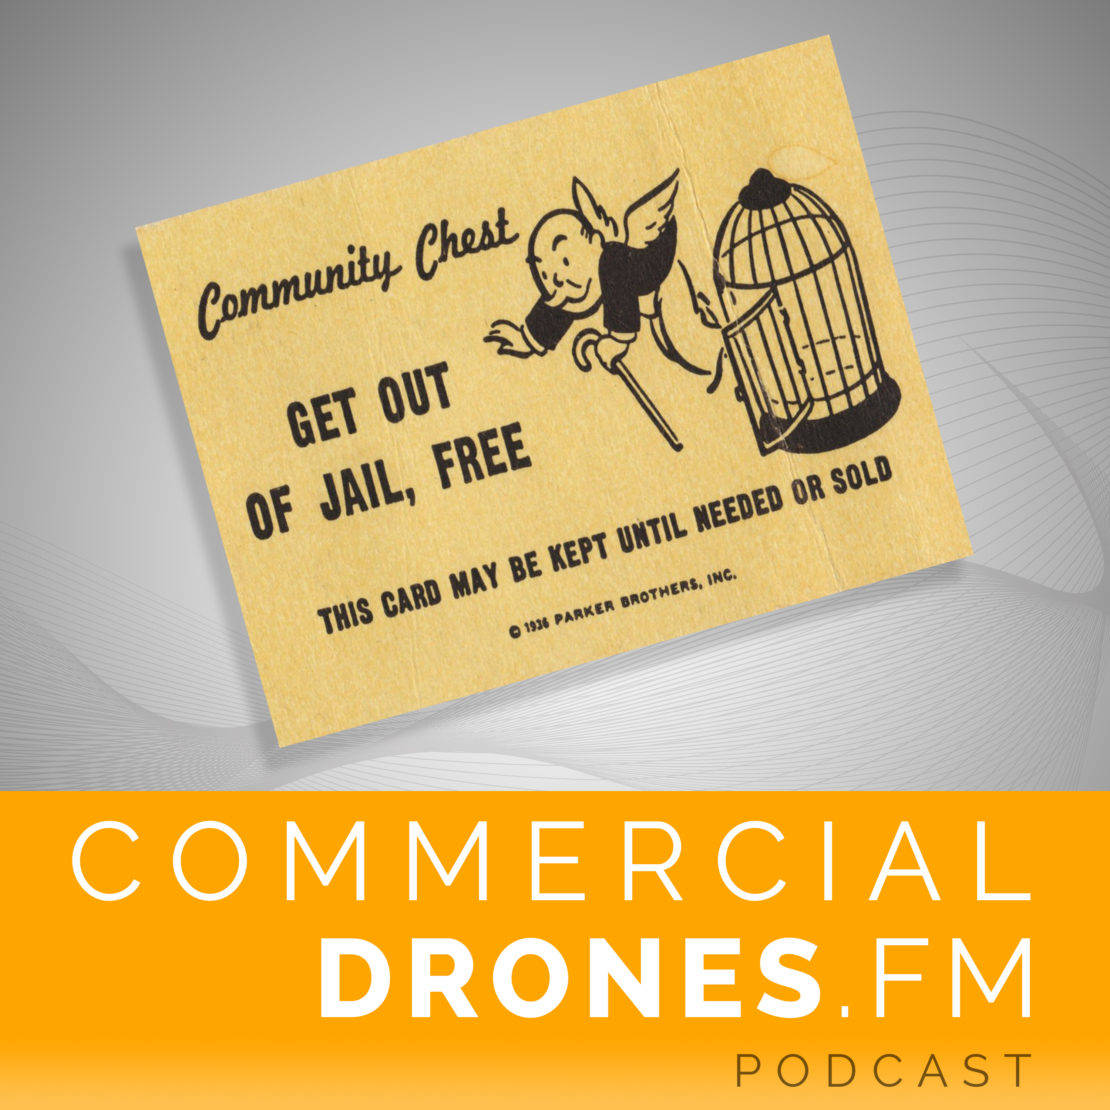 How To Get An Faa Get Out Of Jail Free Card